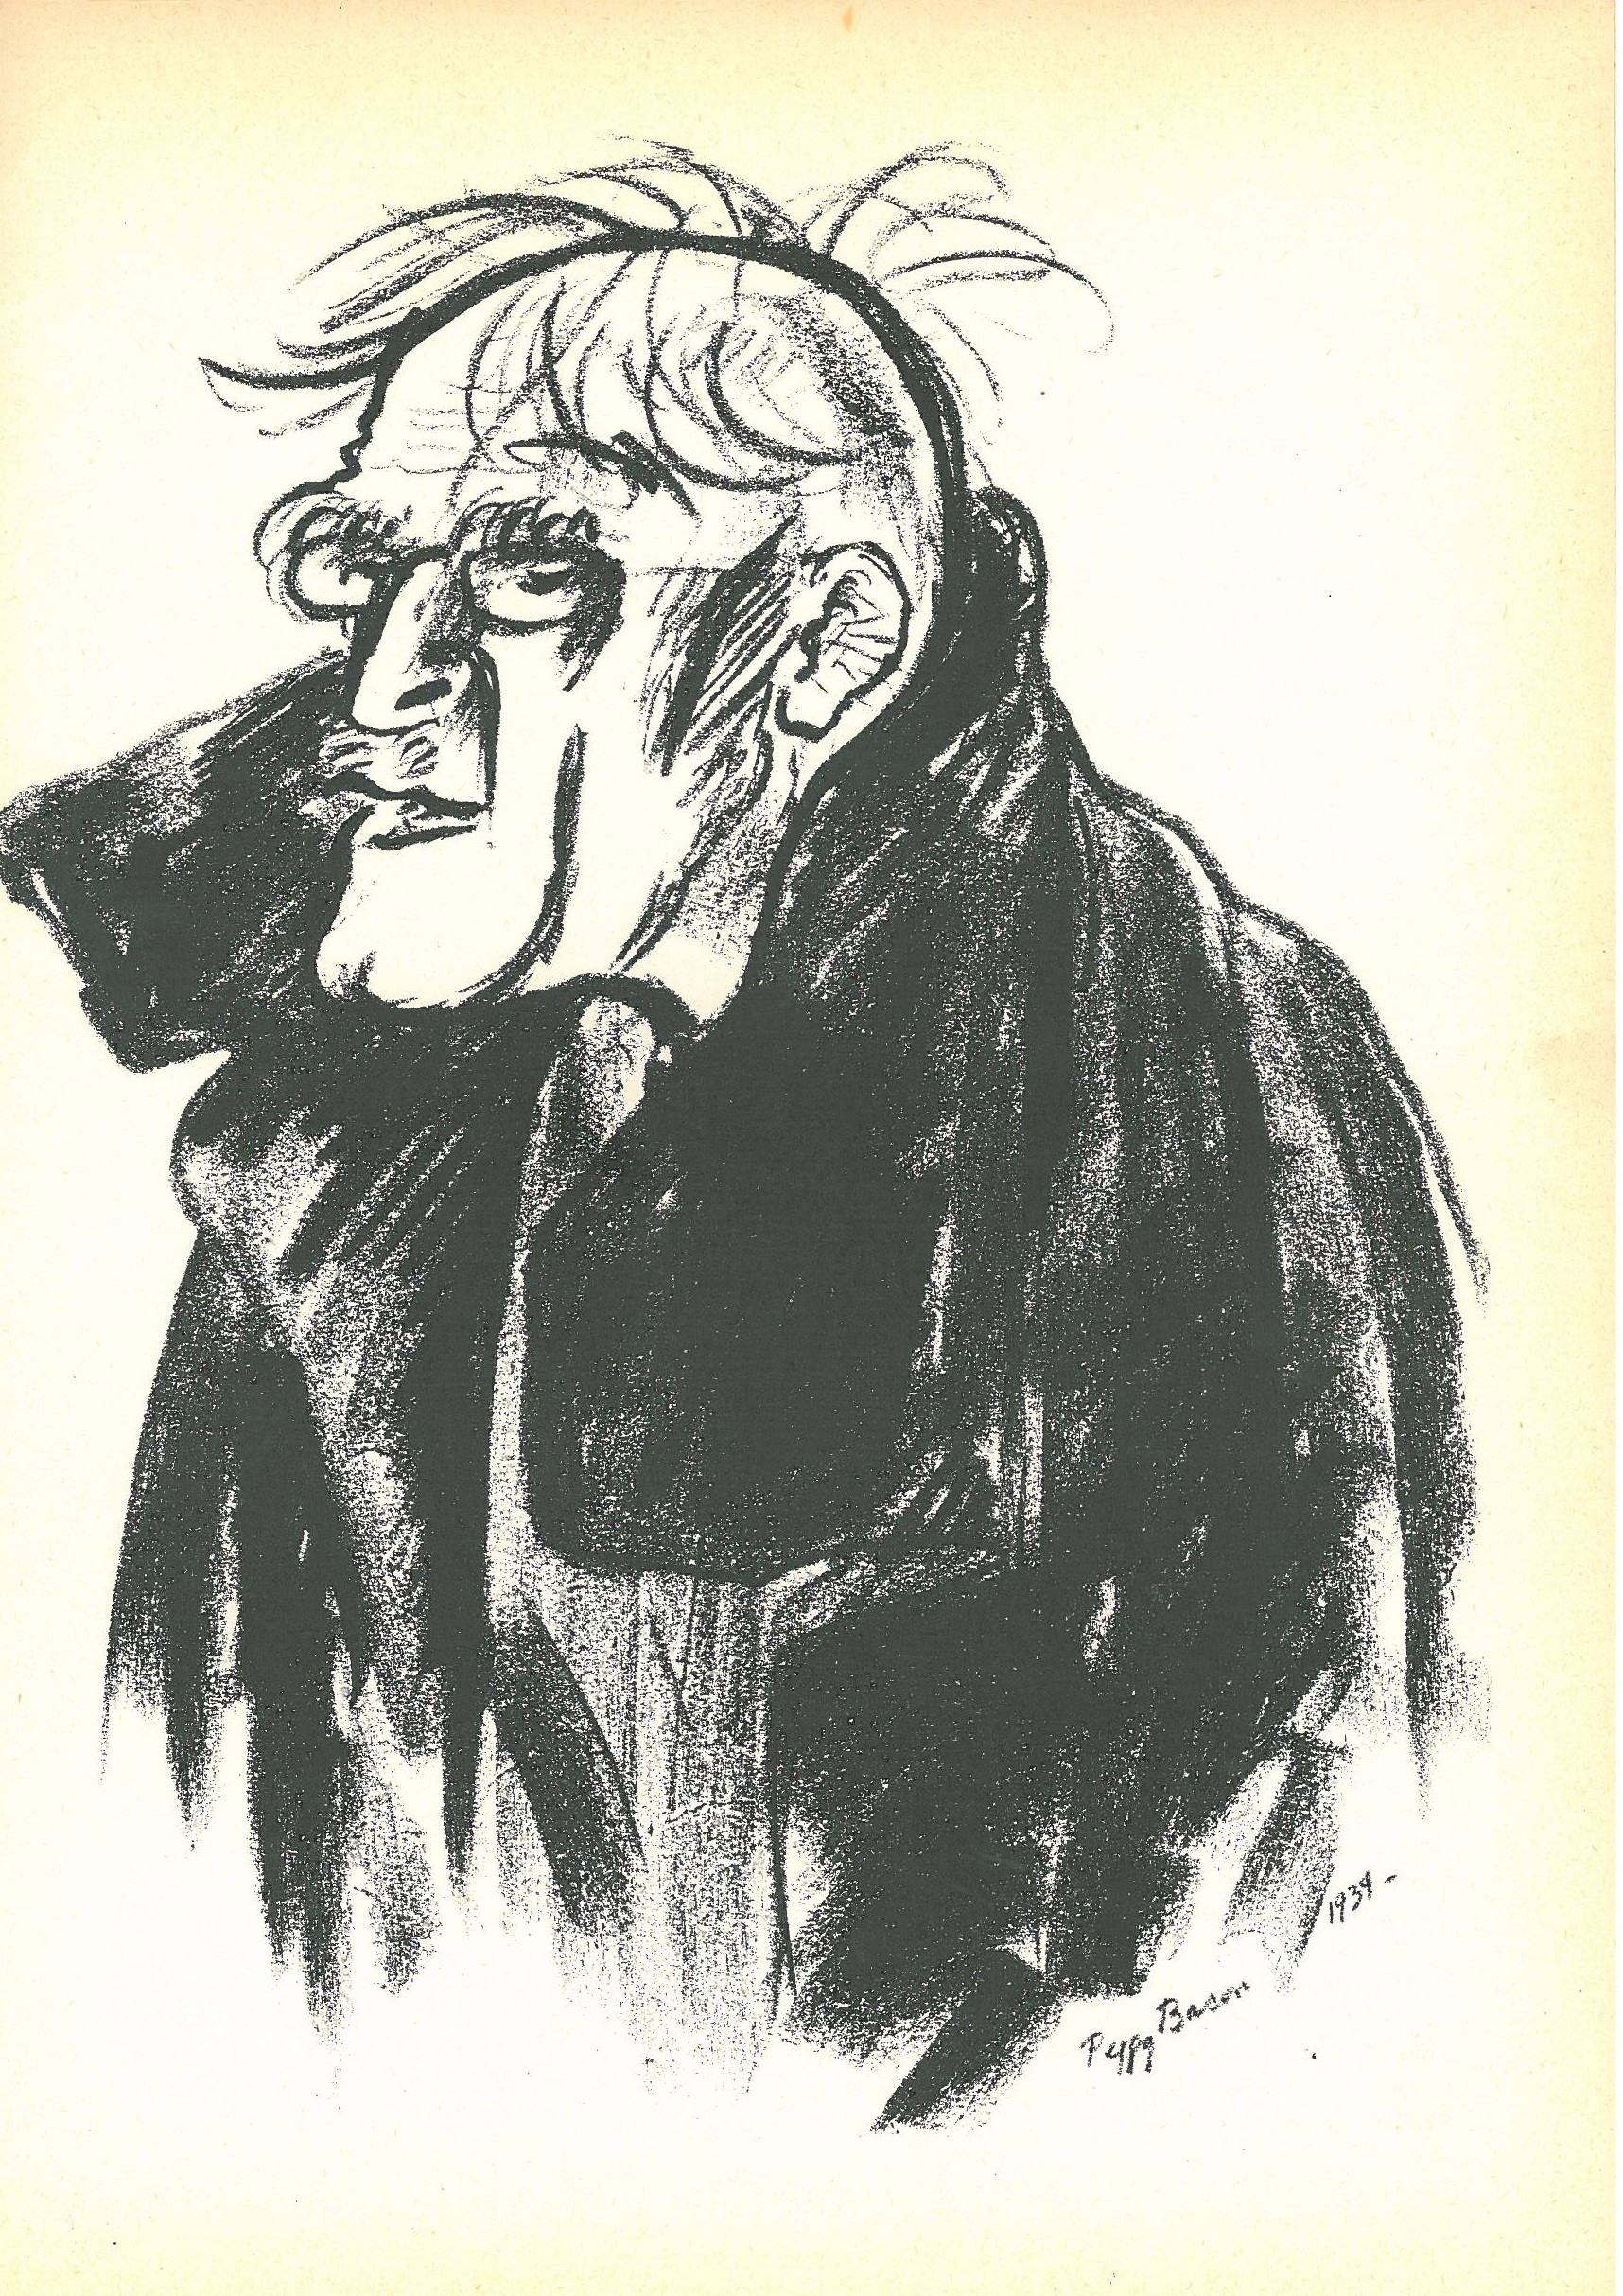 From Peggy Bacon's book of caricatures, 1934, her drawing of photographer and gallery founder Alfred Stieglitz